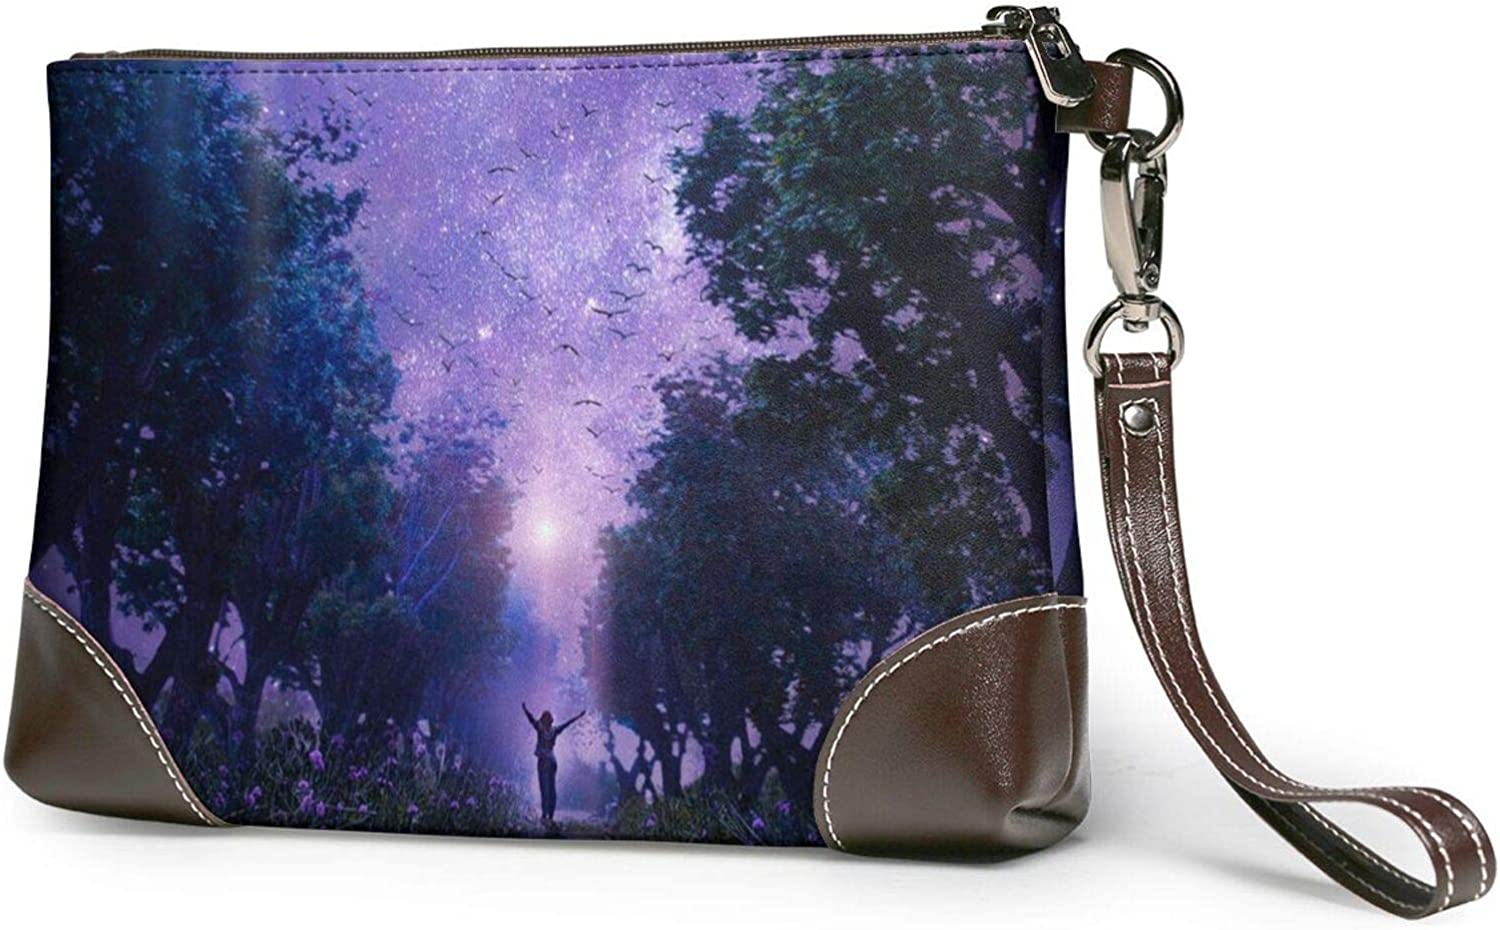 Ranking Mail order cheap TOP6 Forest Starry Clutch Purses Wristlet Leather Wallet Purse